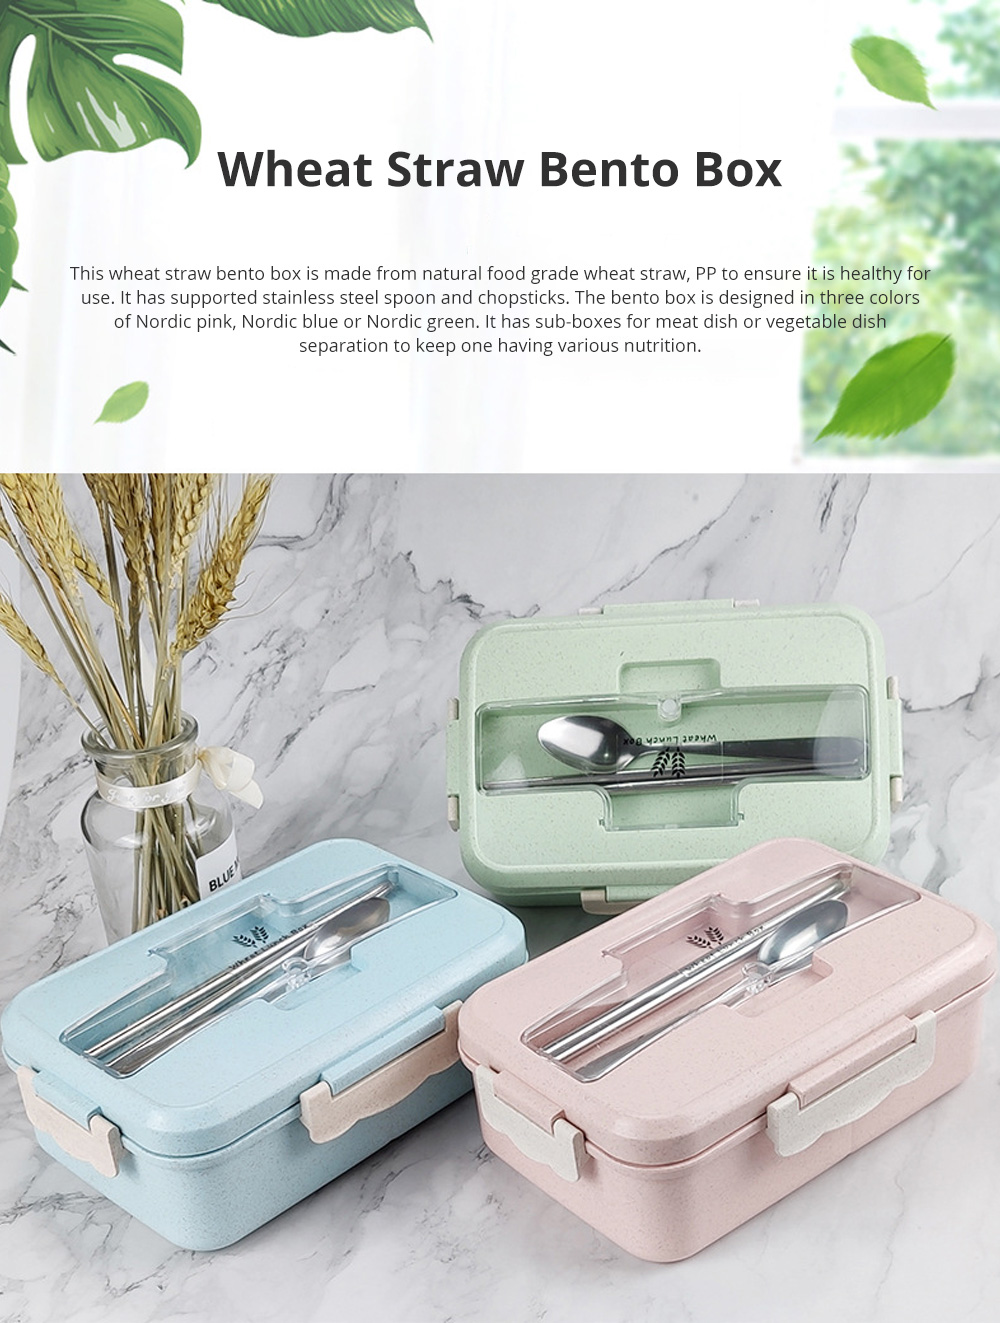 Creative Nordic Style Wheat Straw Bento Box for Students Portable Food Grade Wheat Straw Lunch Box 0